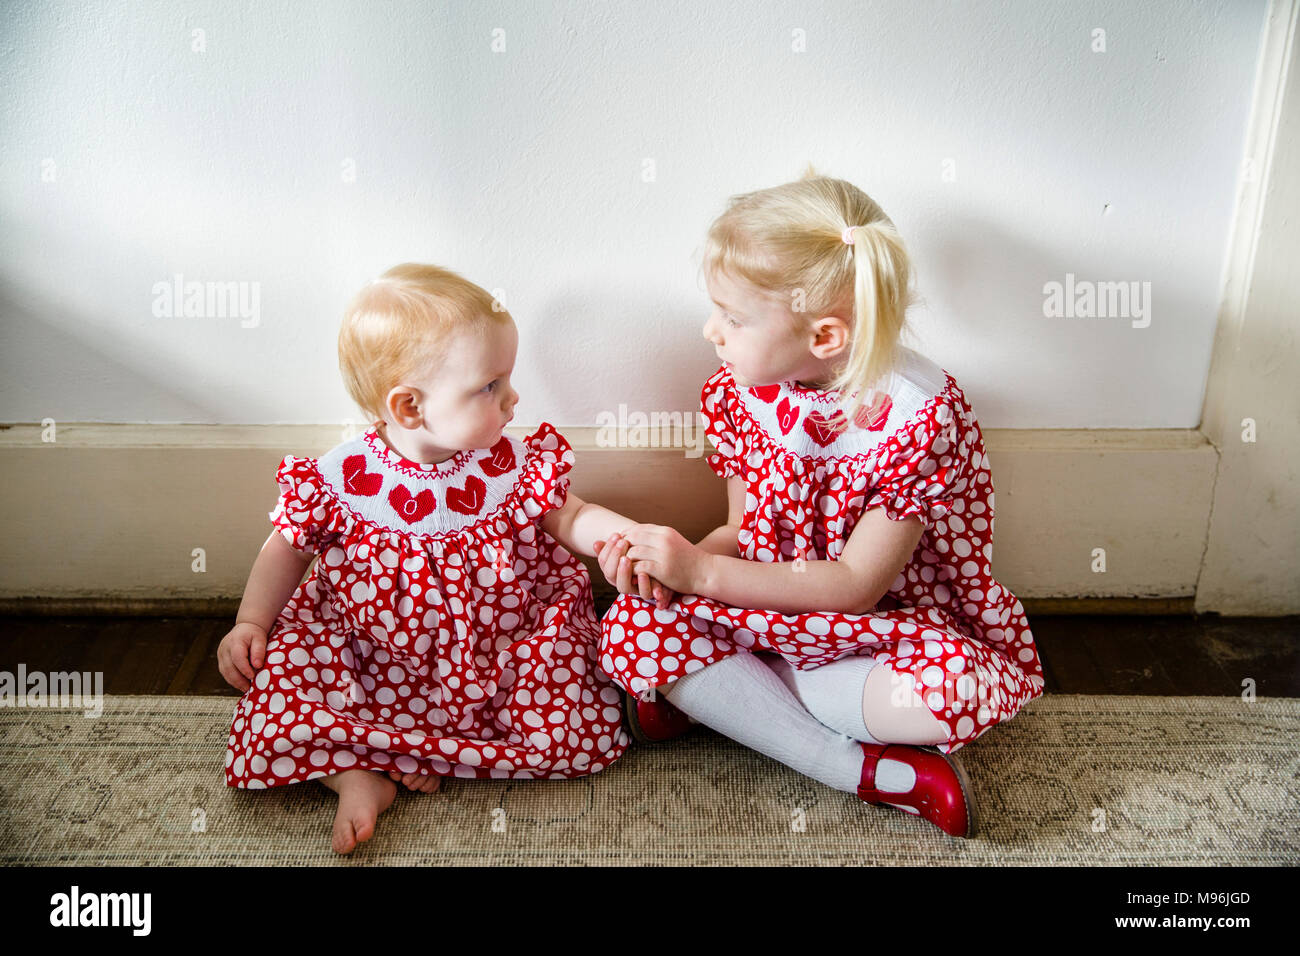 Baby and girl looking at each other in same red dress - Stock Image